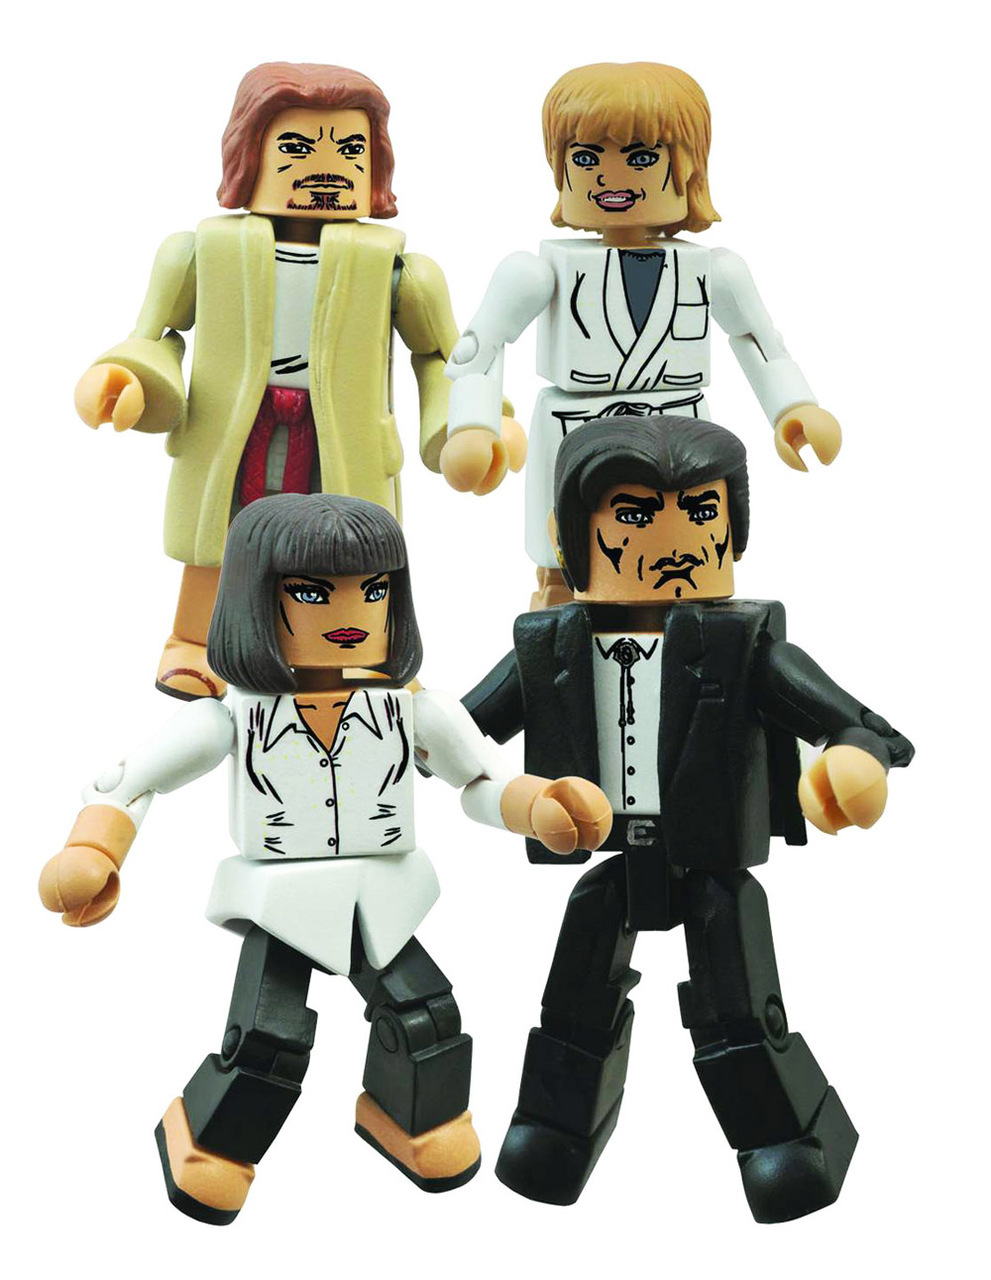 Pulp Fiction Minimates Mia's Night Out Box Set